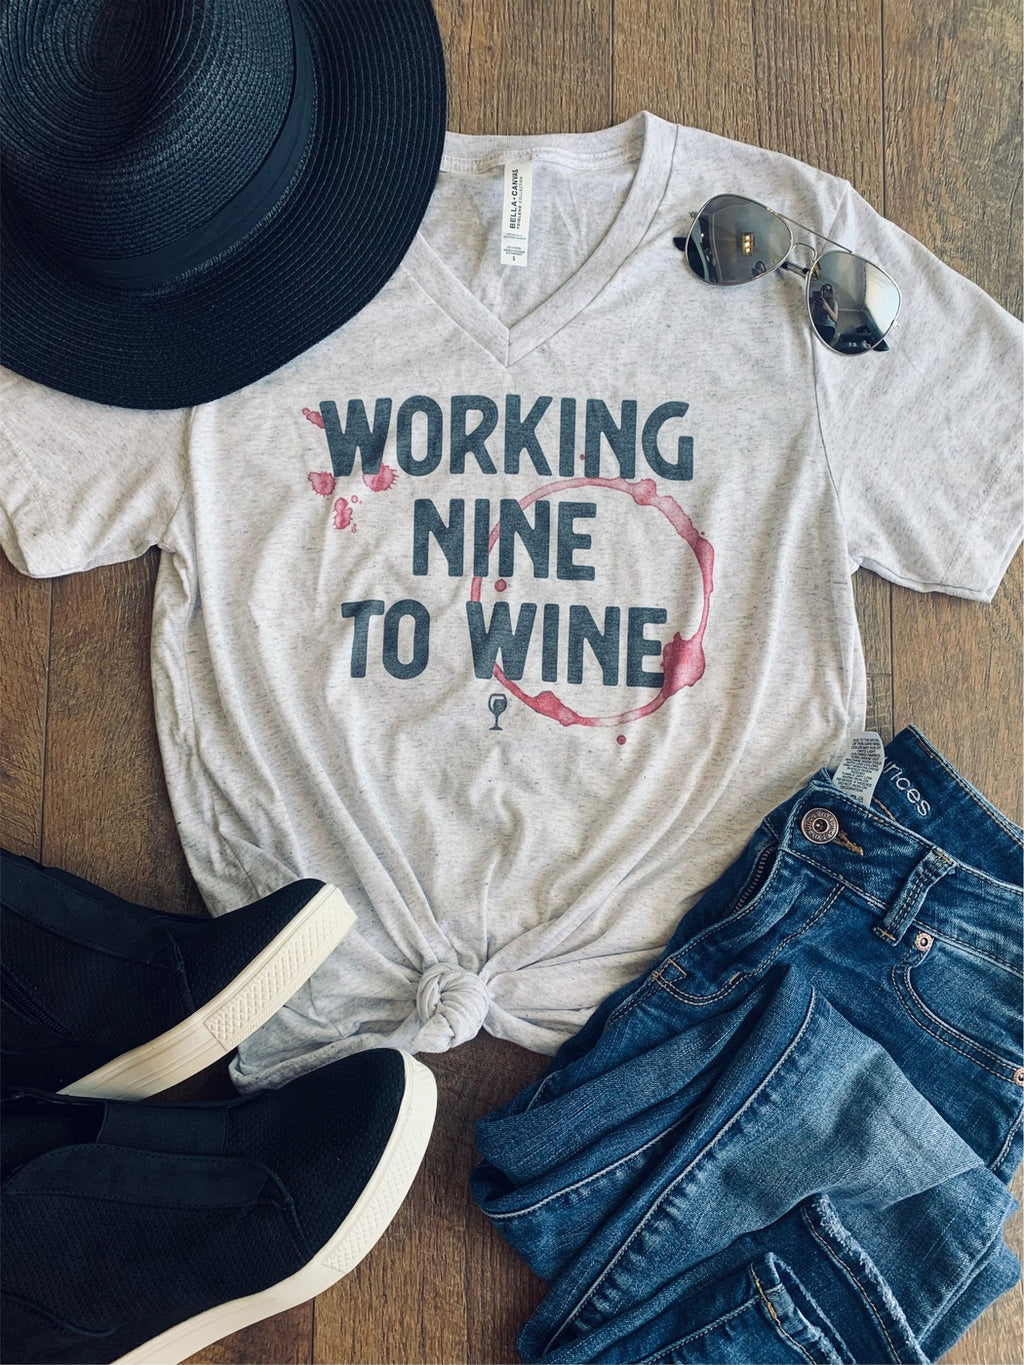 Working Nine to Wine Graphic Tee - HeartsEase Clothing